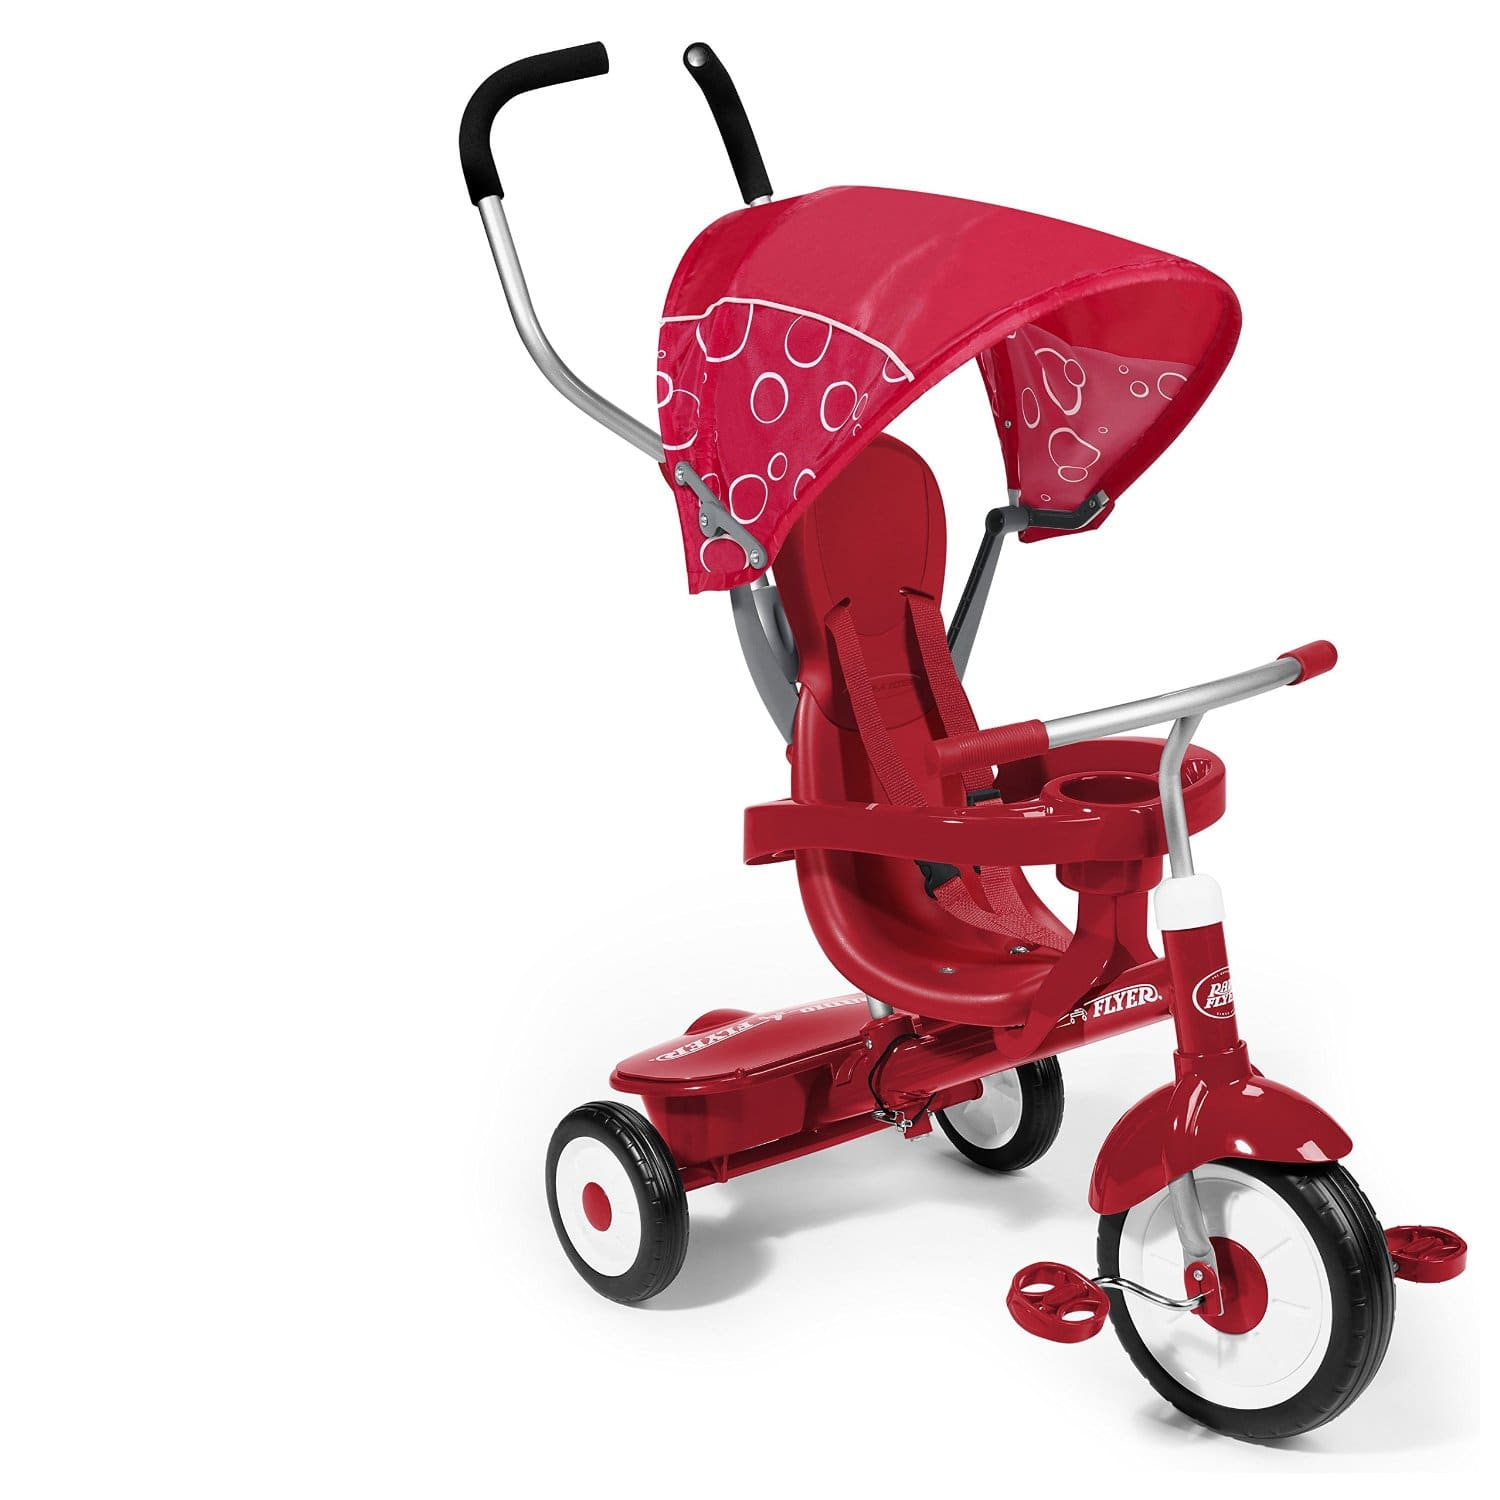 Radio Flyer 4-in-1 Stroll 'N Trike $65.99